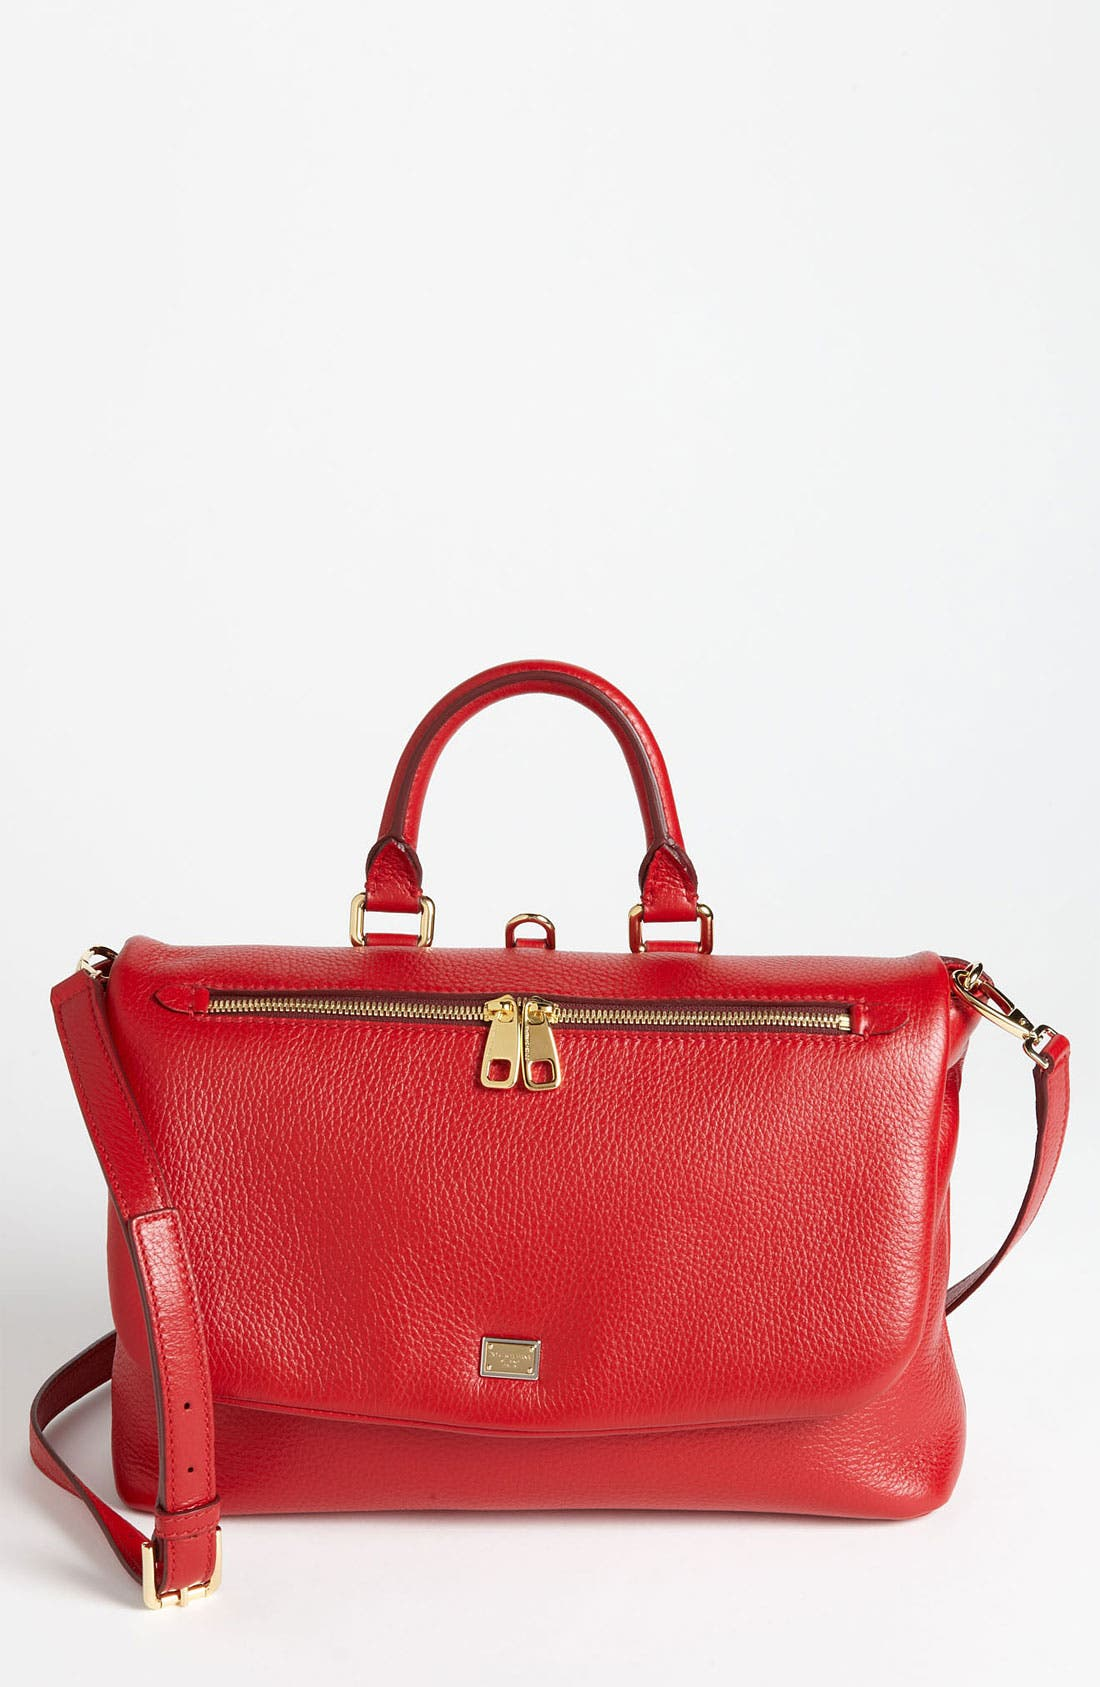 Alternate Image 1 Selected - Dolce&Gabbana 'Miss Emma' Leather Satchel